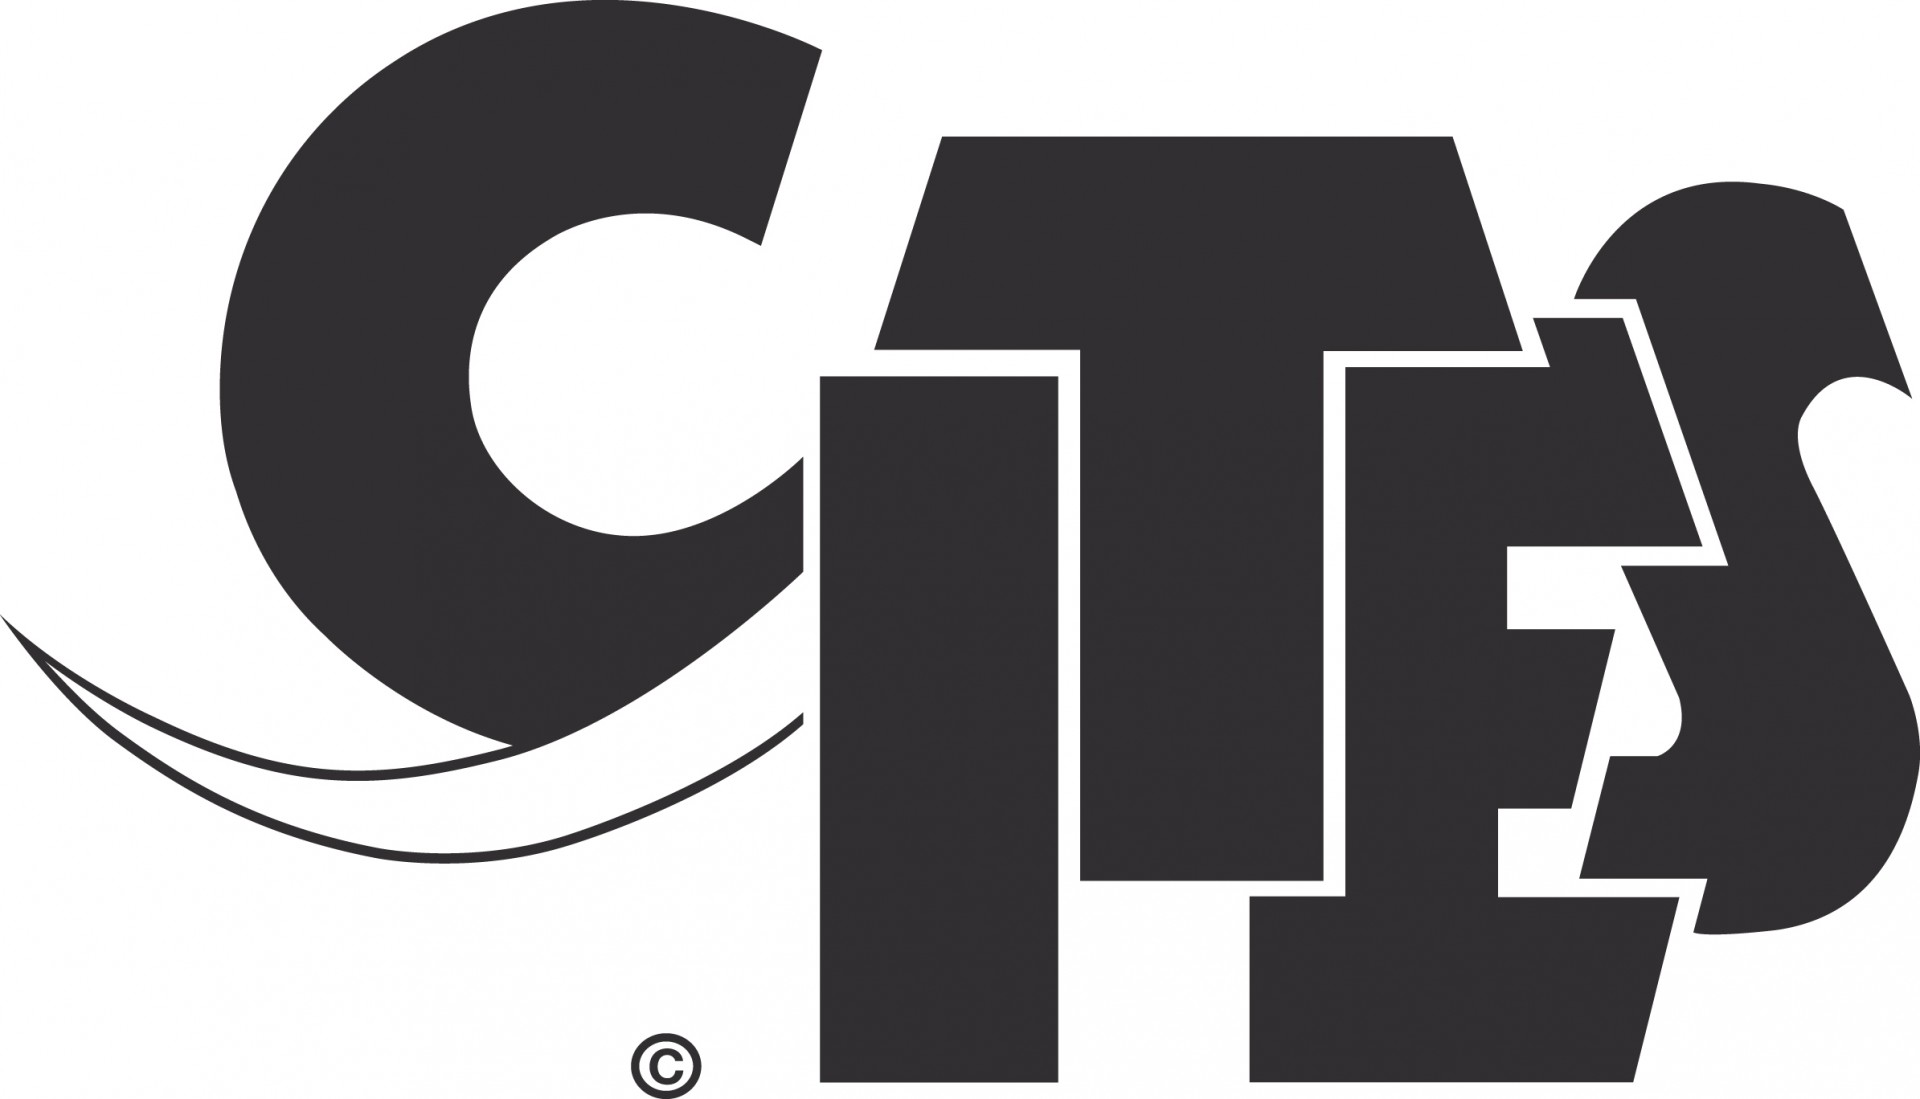 cites_logo_high_resolution.jpg